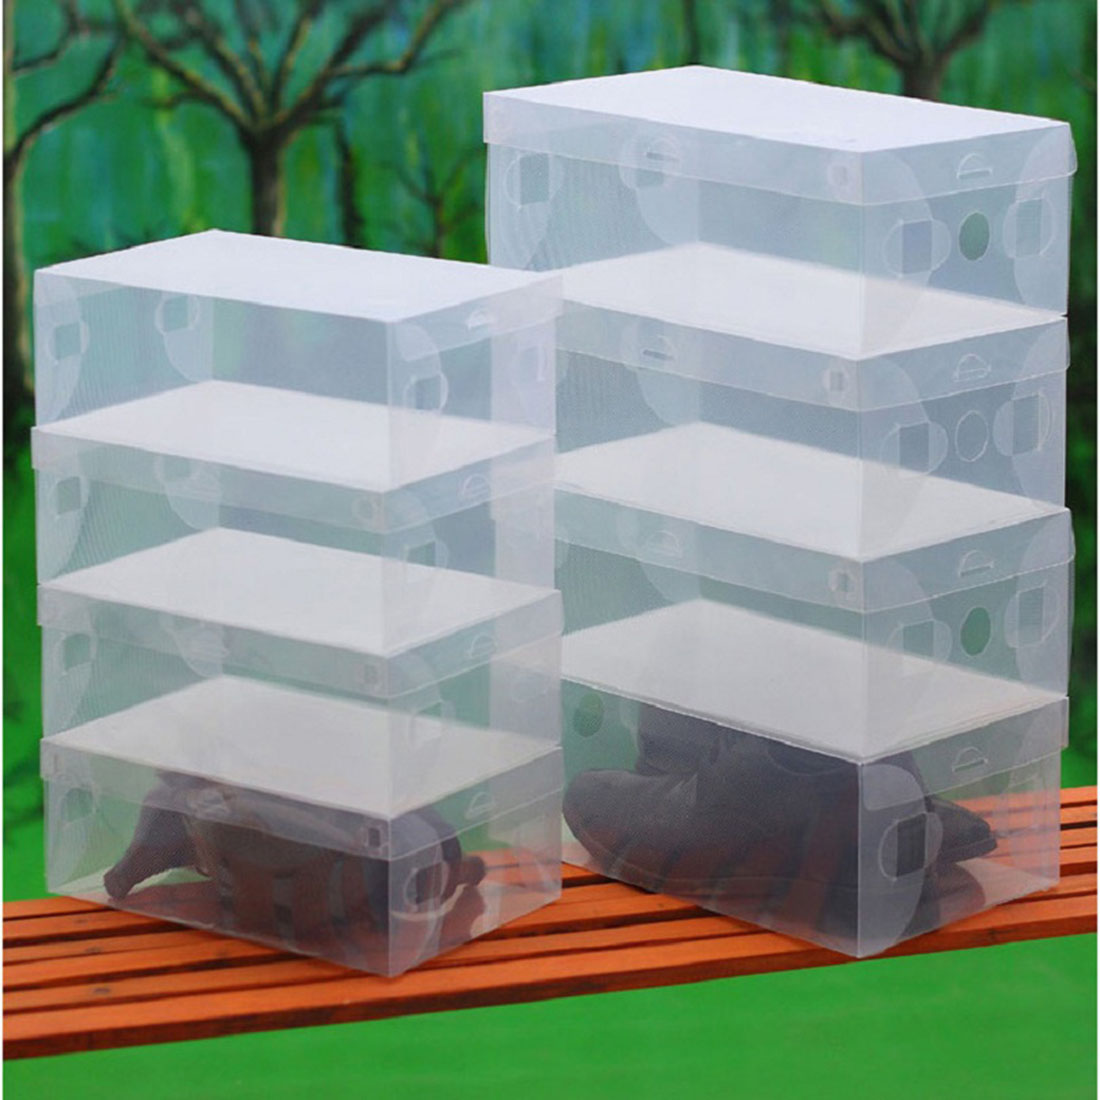 new style 10Pcs Transparent Clear Plastic Shoes Storage Boxes Foldable Shoes Case Holder(China (Mainland))